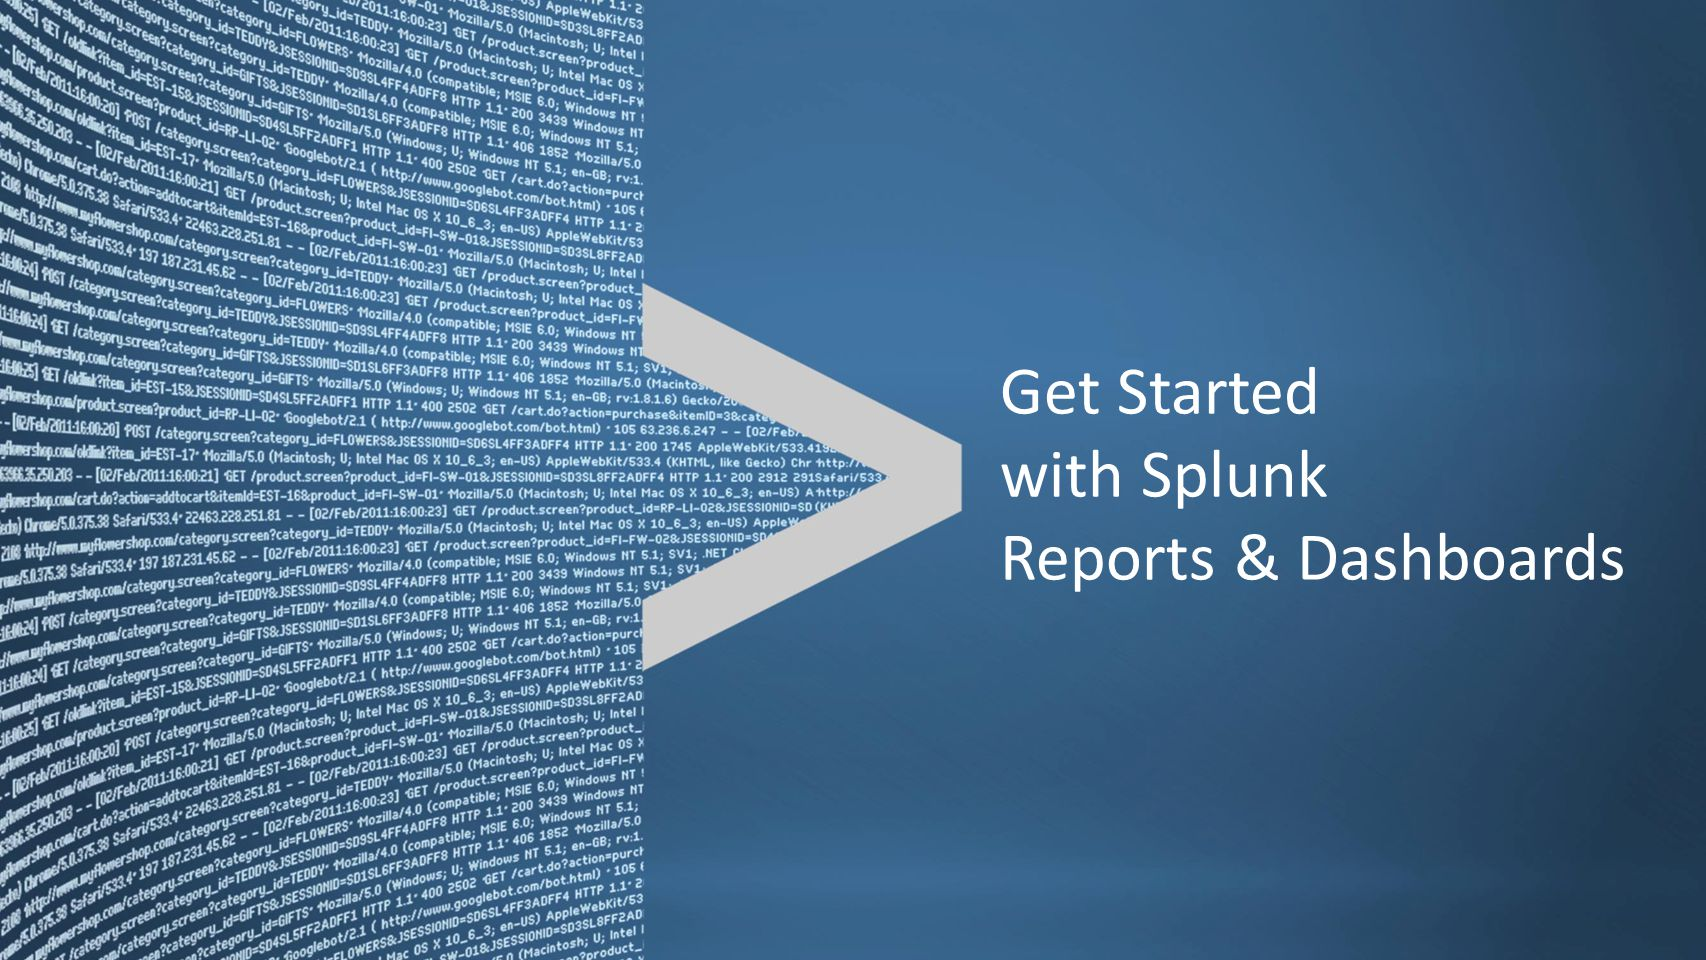 Copyright © 2011, Splunk Inc.Listen to your data. Get Started with Splunk Reports & Dashboards